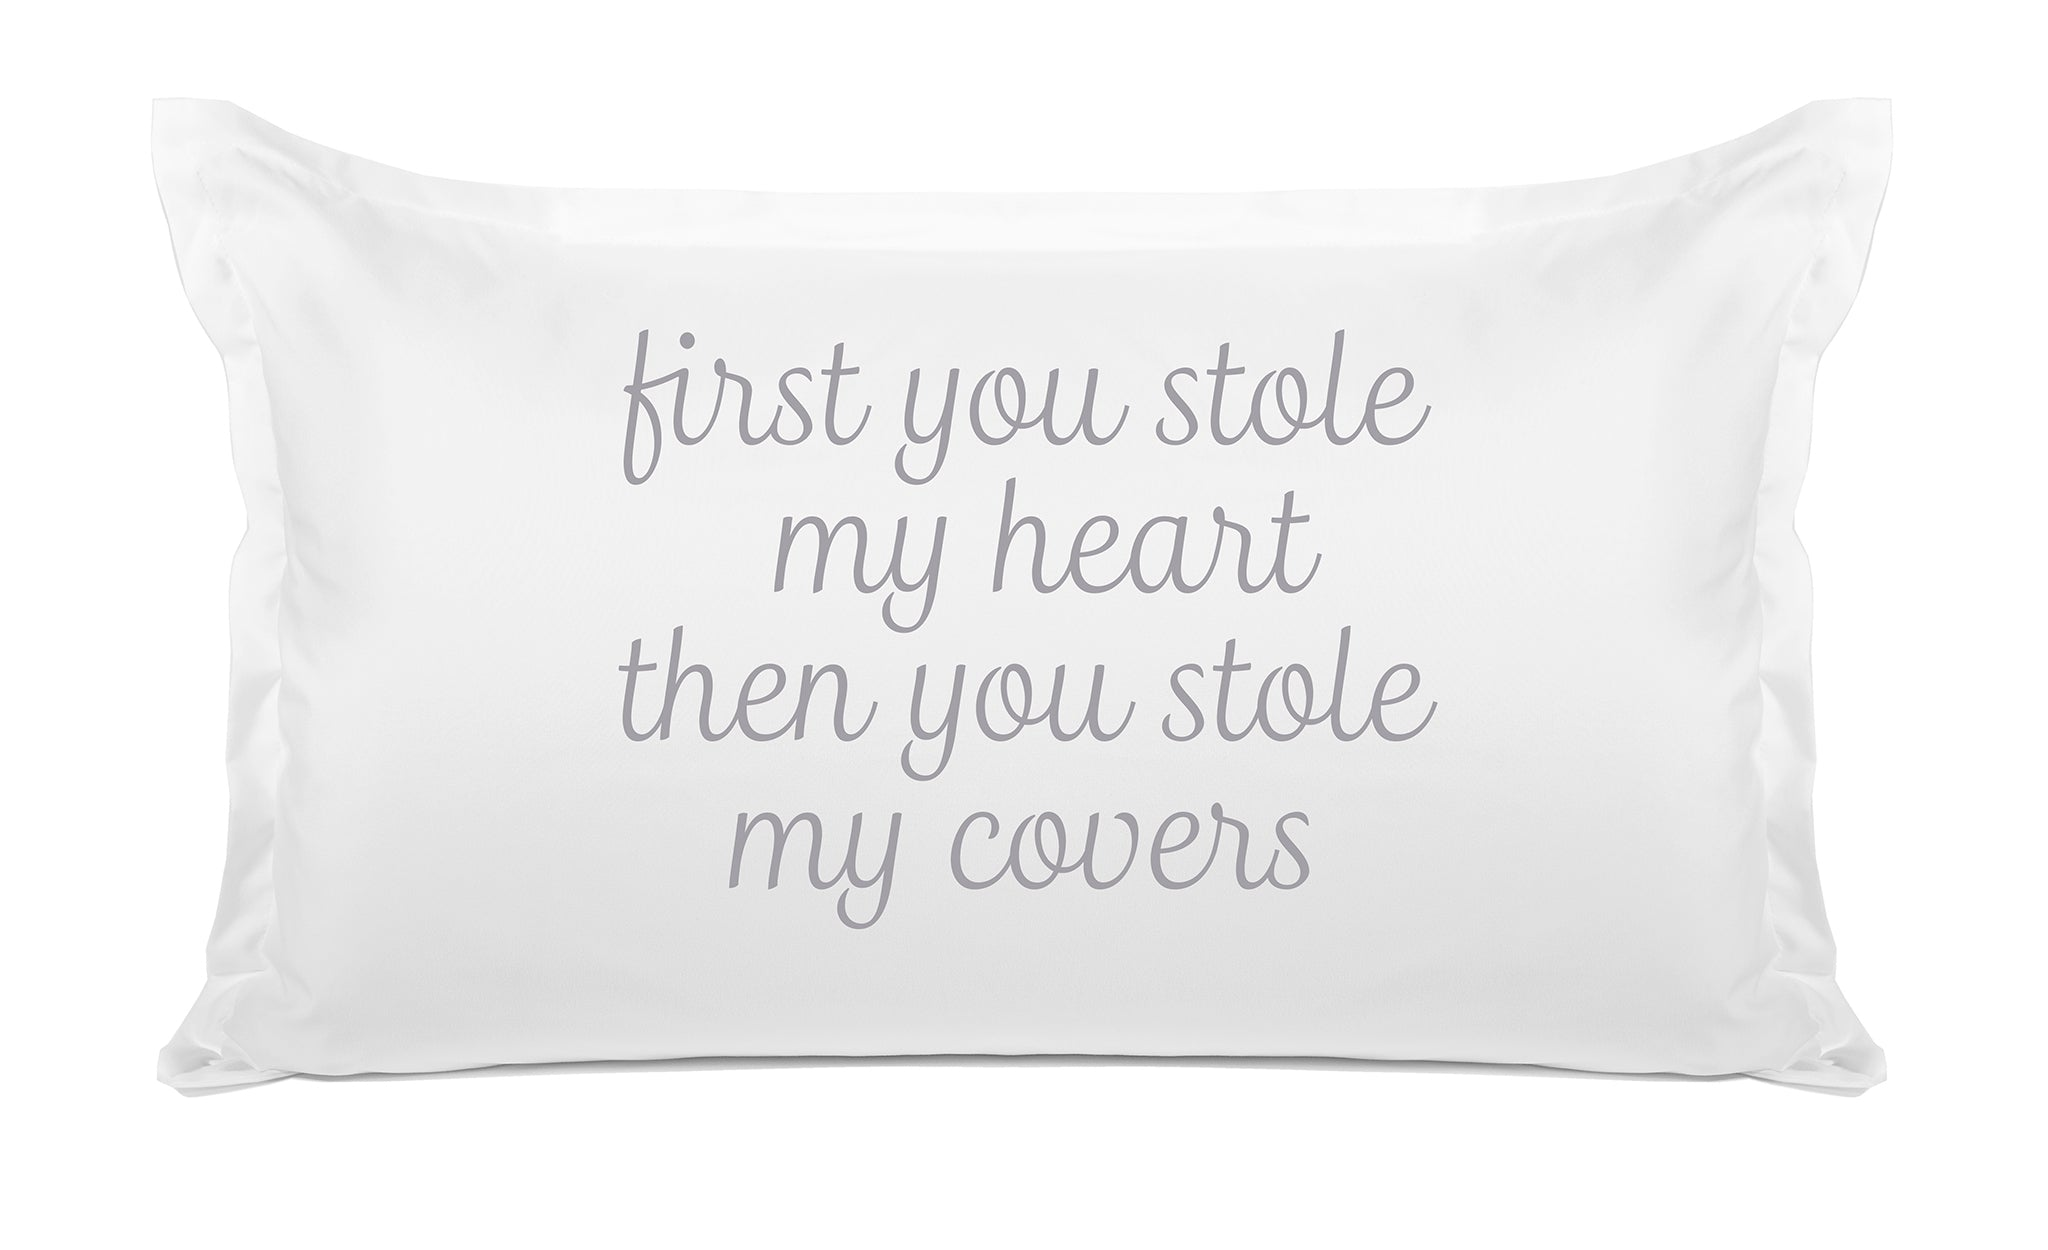 First You Stole My Heart Then You Stole My Covers - Inspirational Quotes Pillowcase Collection-Di Lewis